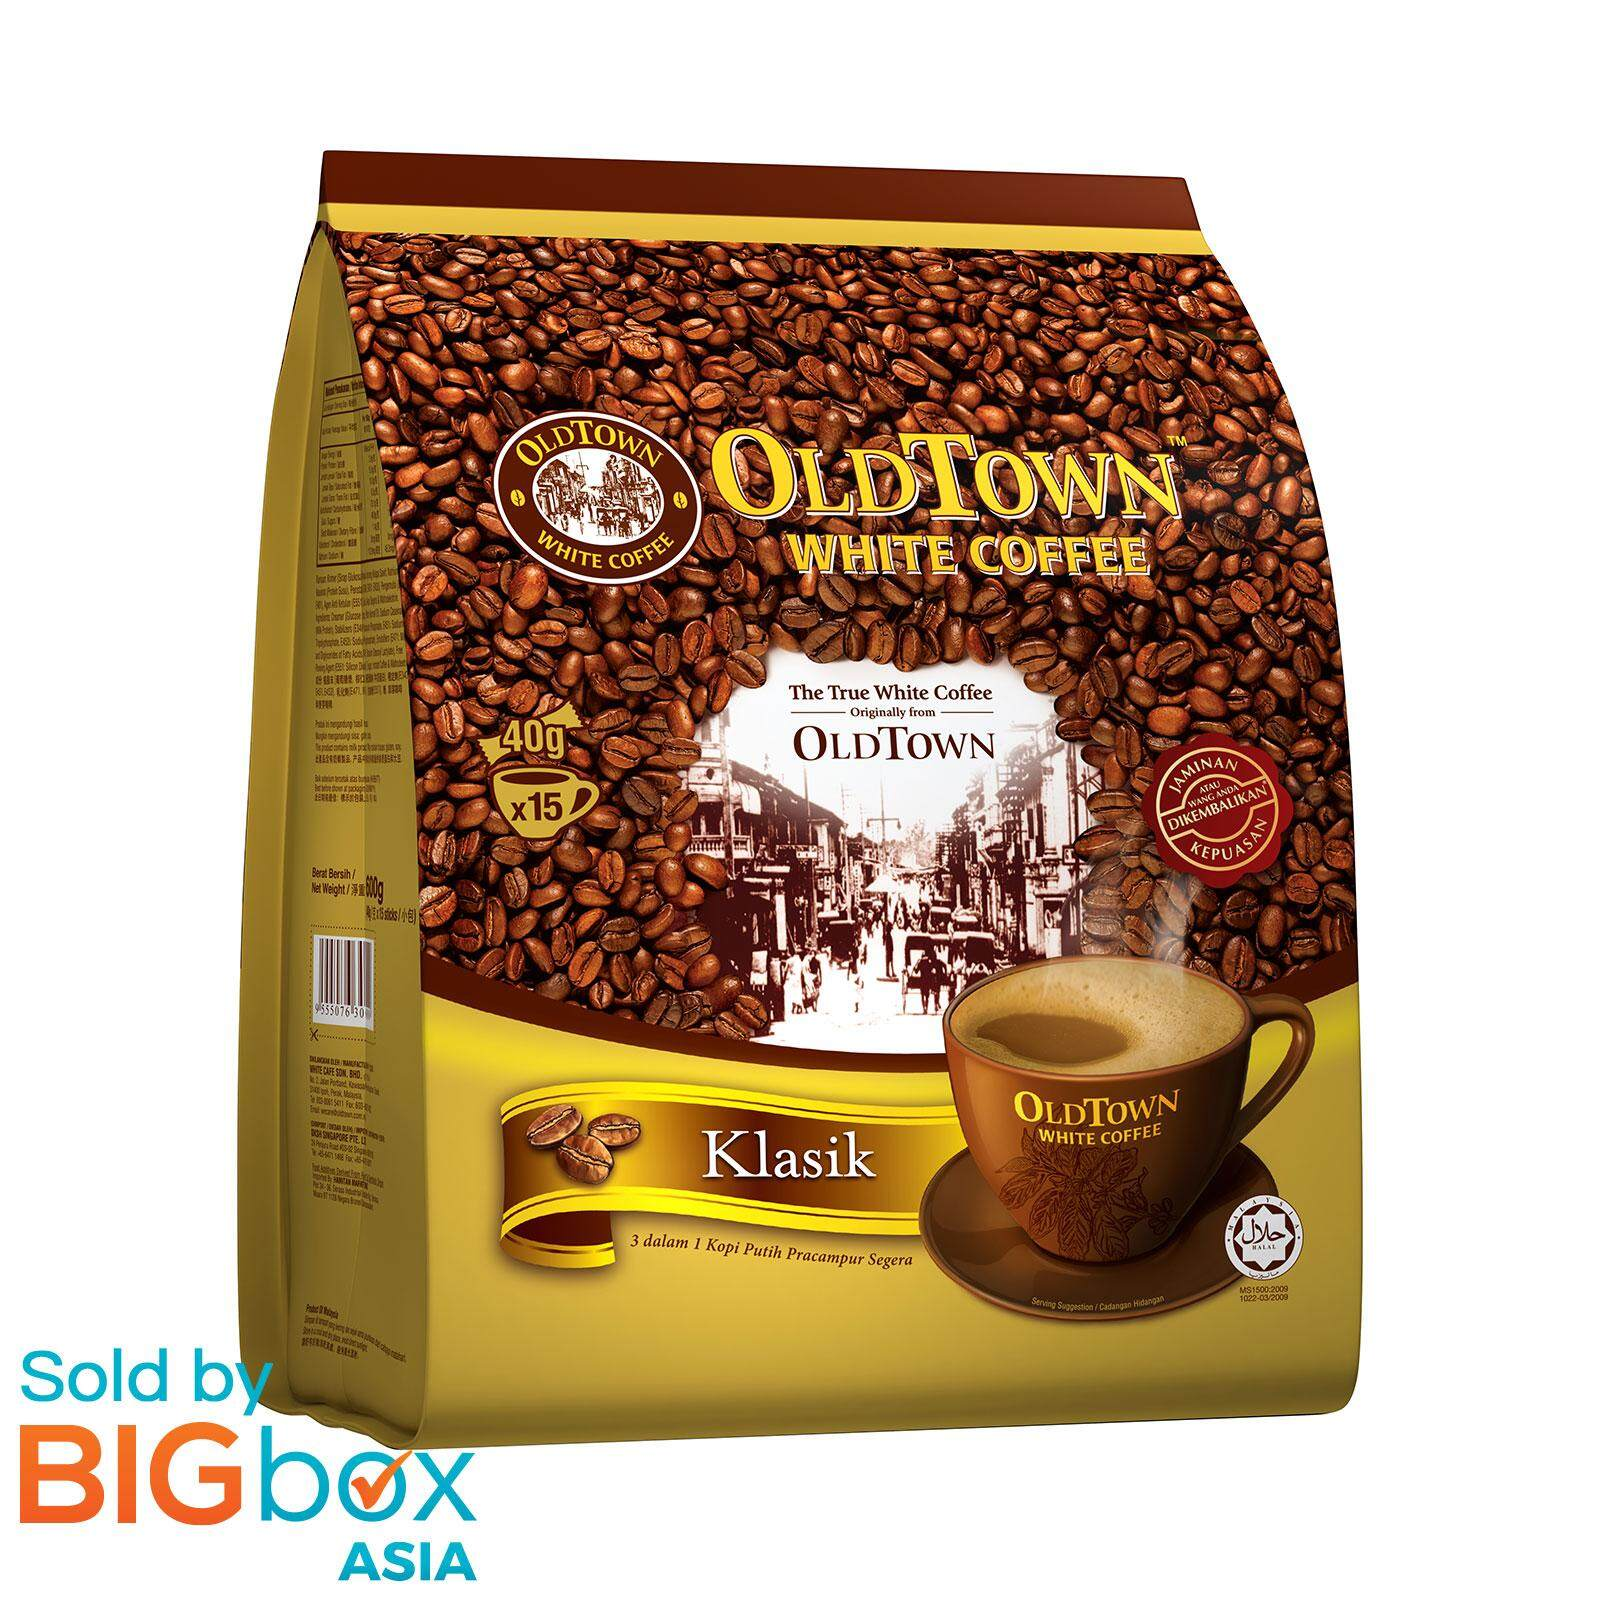 OLDTOWN White Coffee 3in1 570g (38g x 15s) - Classic